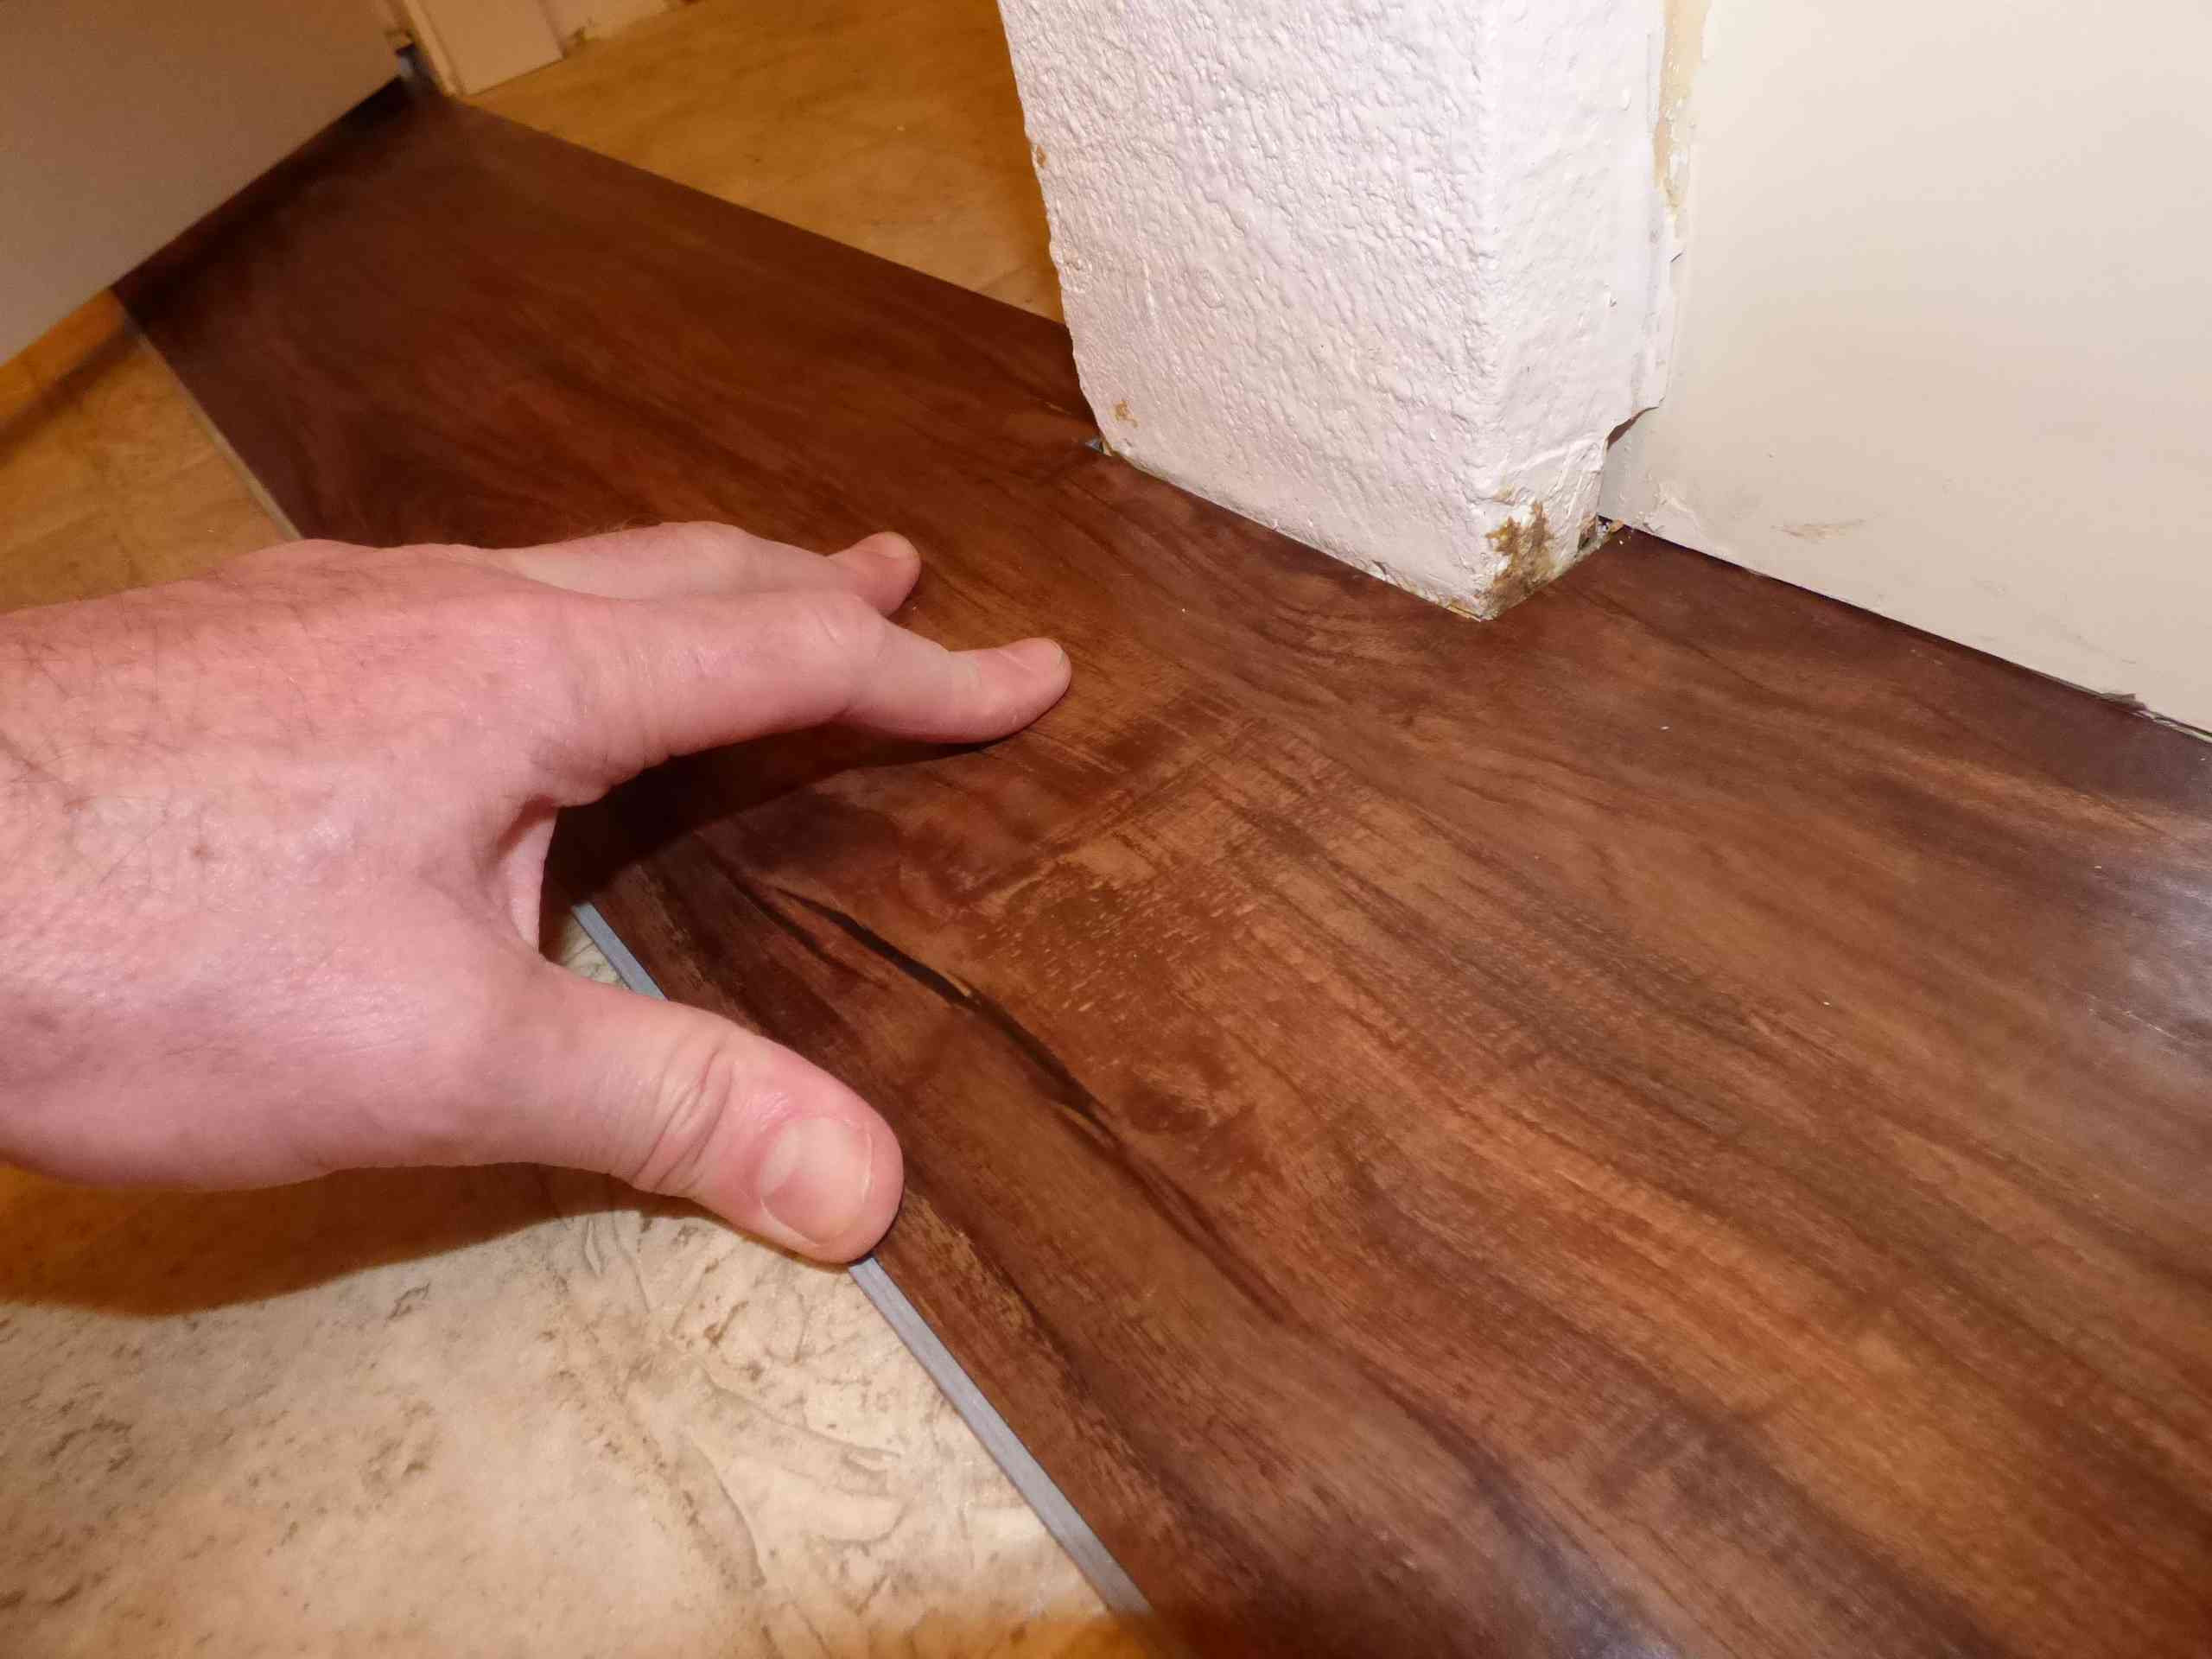 uneven hardwood floor repair of its easy and fast to install plank vinyl flooring with regard to fitting plank around protrusions 56a4a04f3df78cf7728350a3 jpg